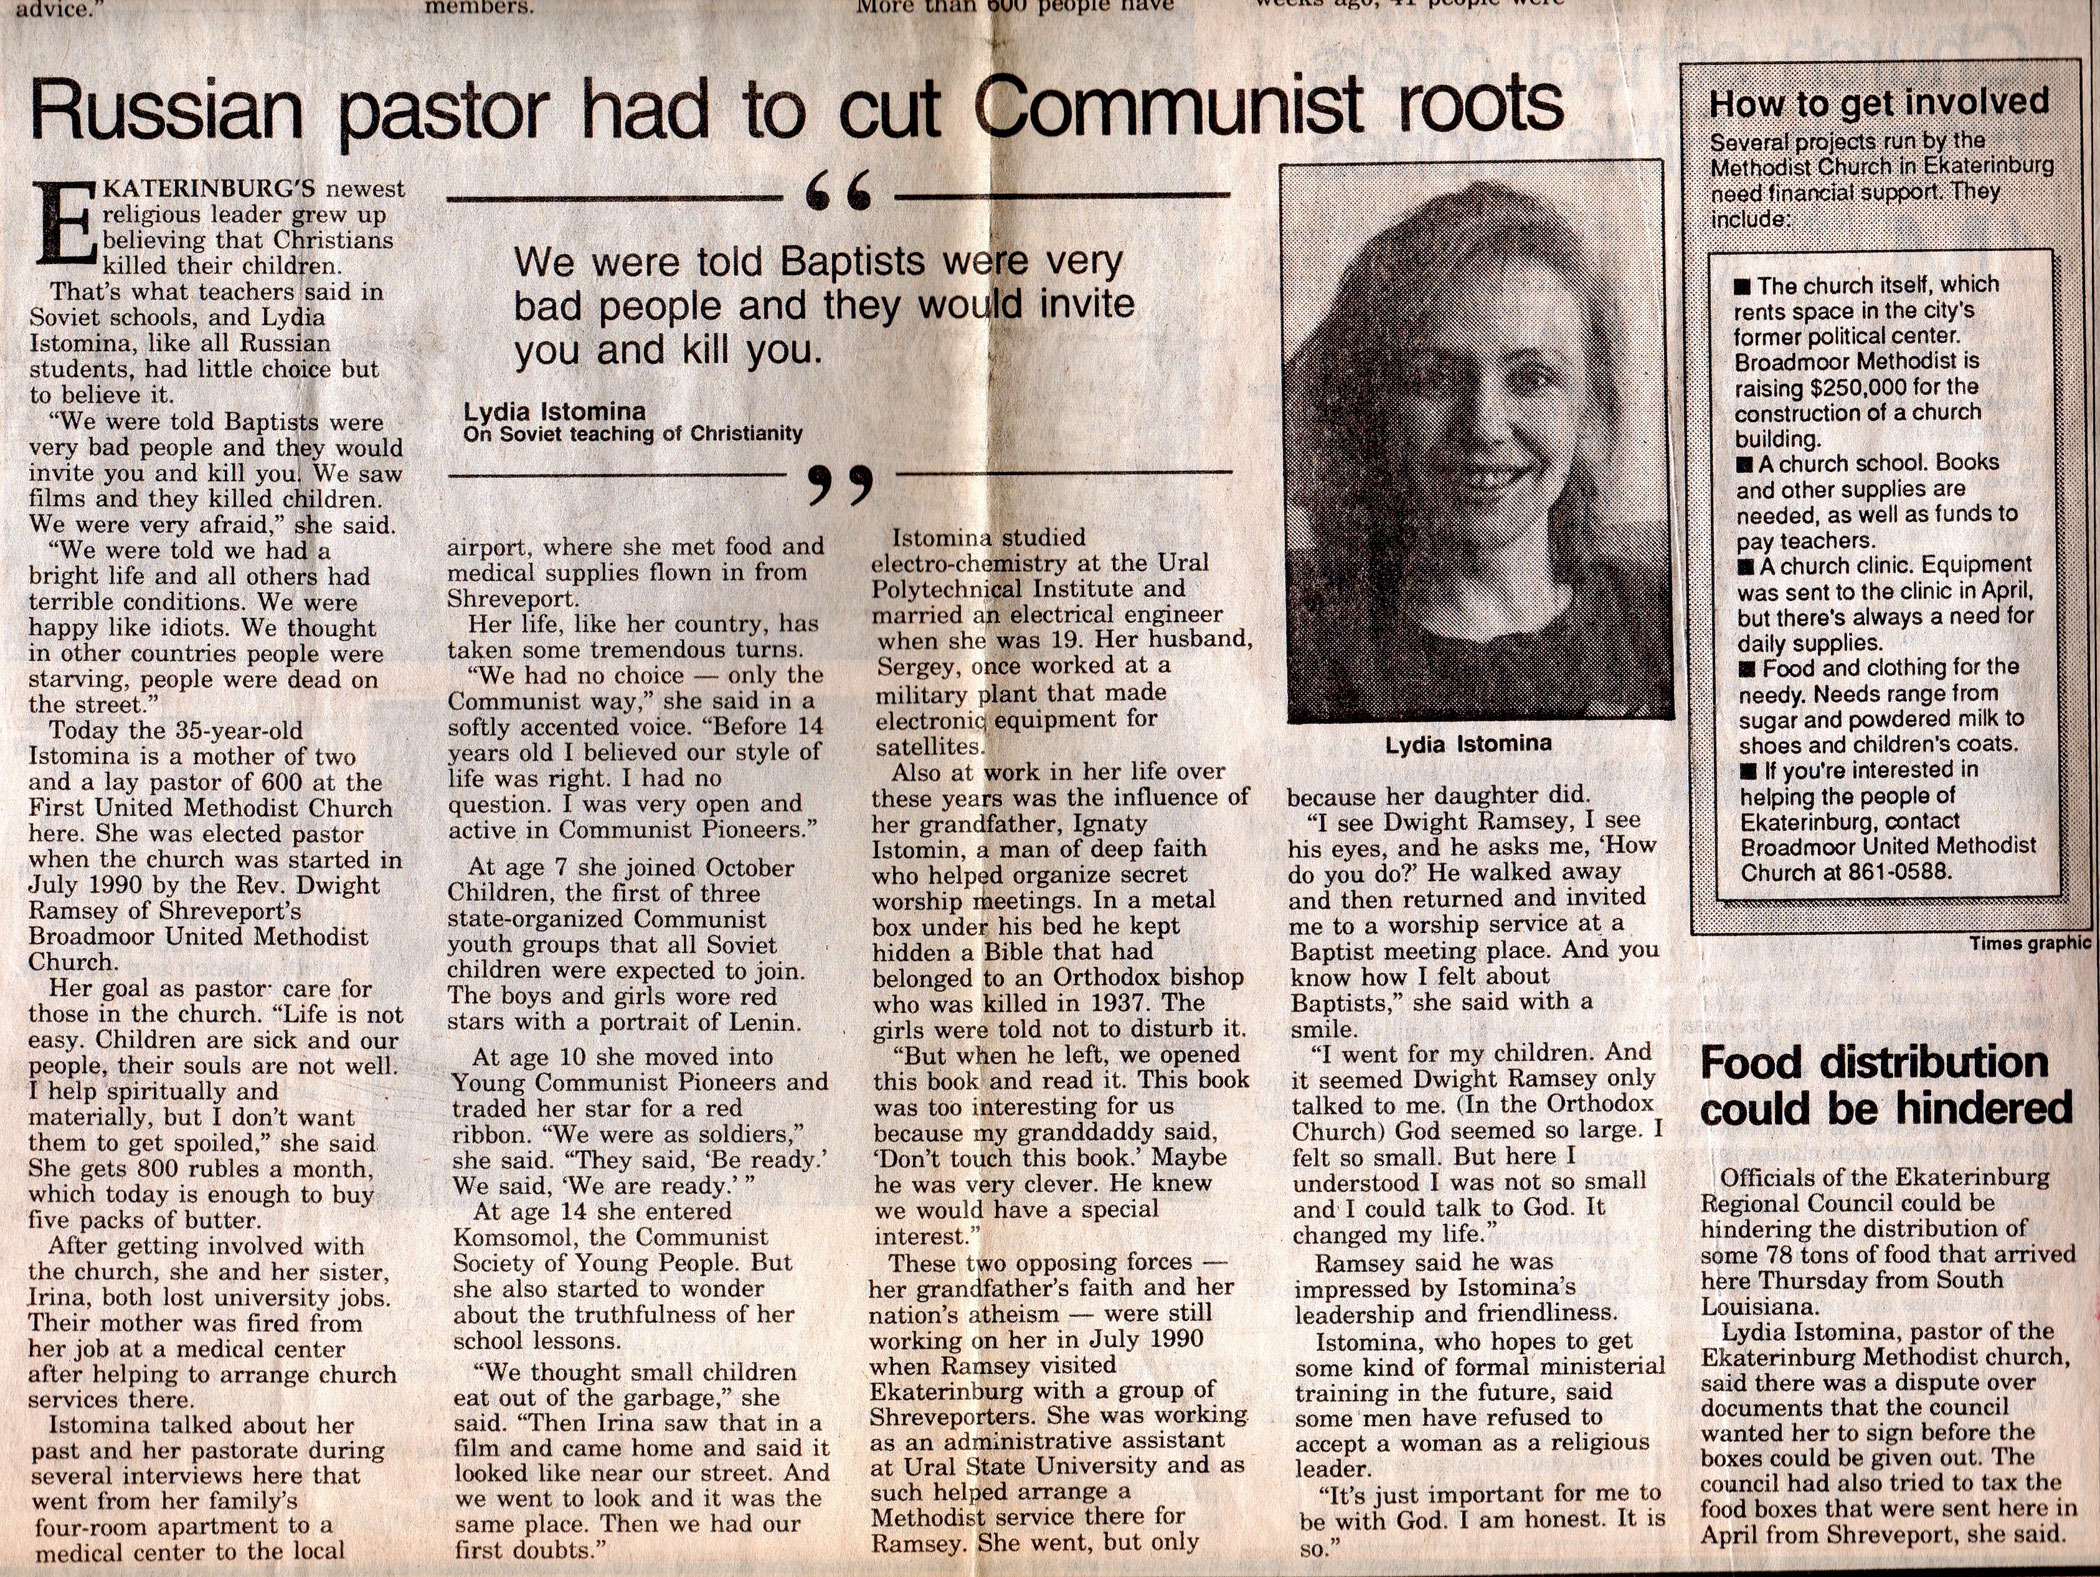 Russian Pastor Had to Cut Communist Roots - The Shreveport Times by David Westerfield